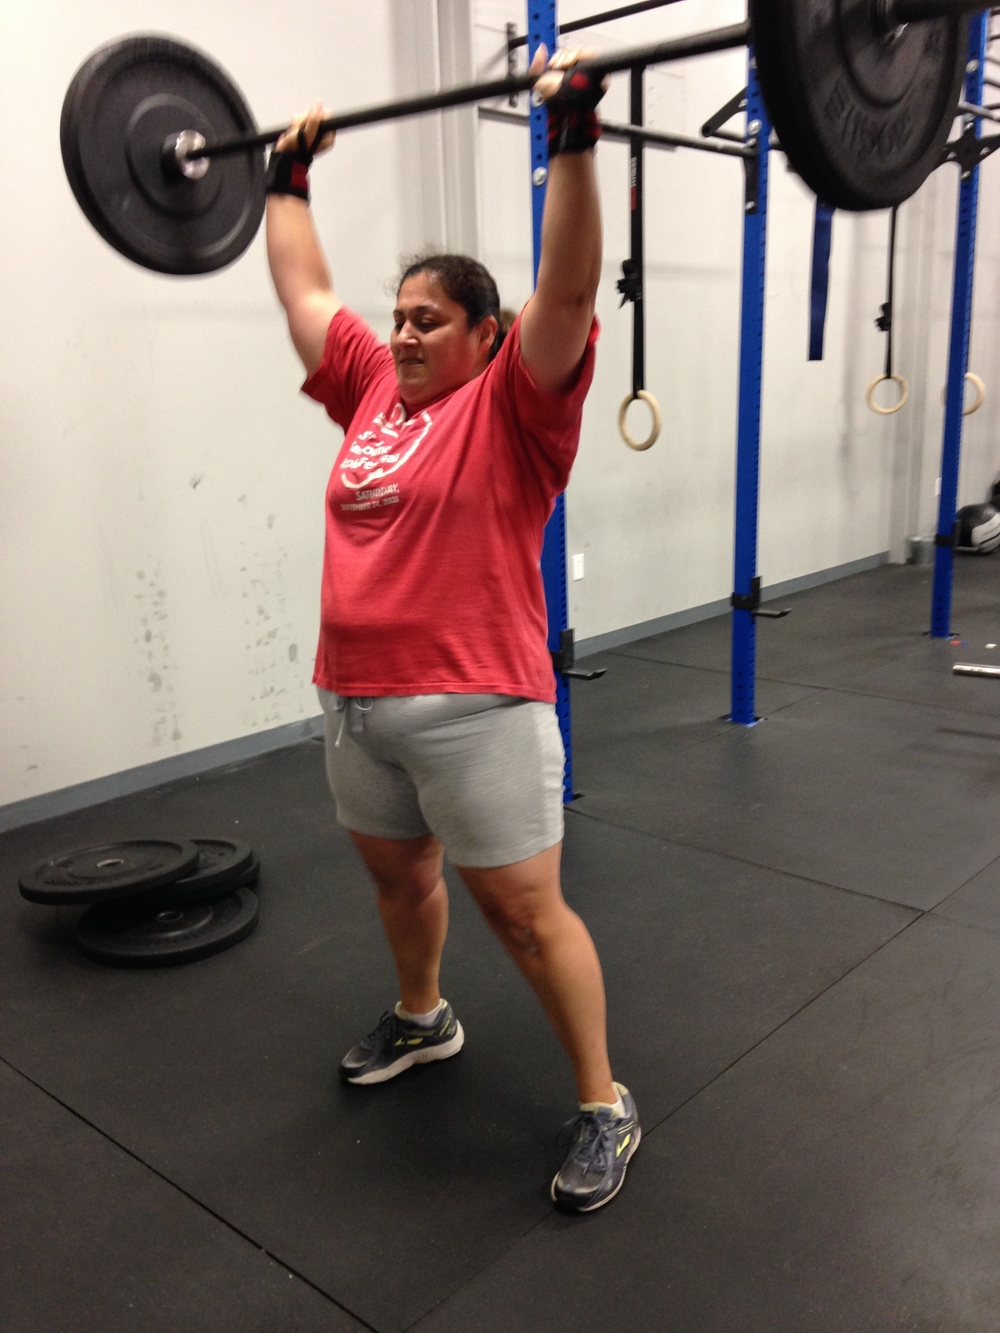 Check out Donielle RX'ing todays WOD!